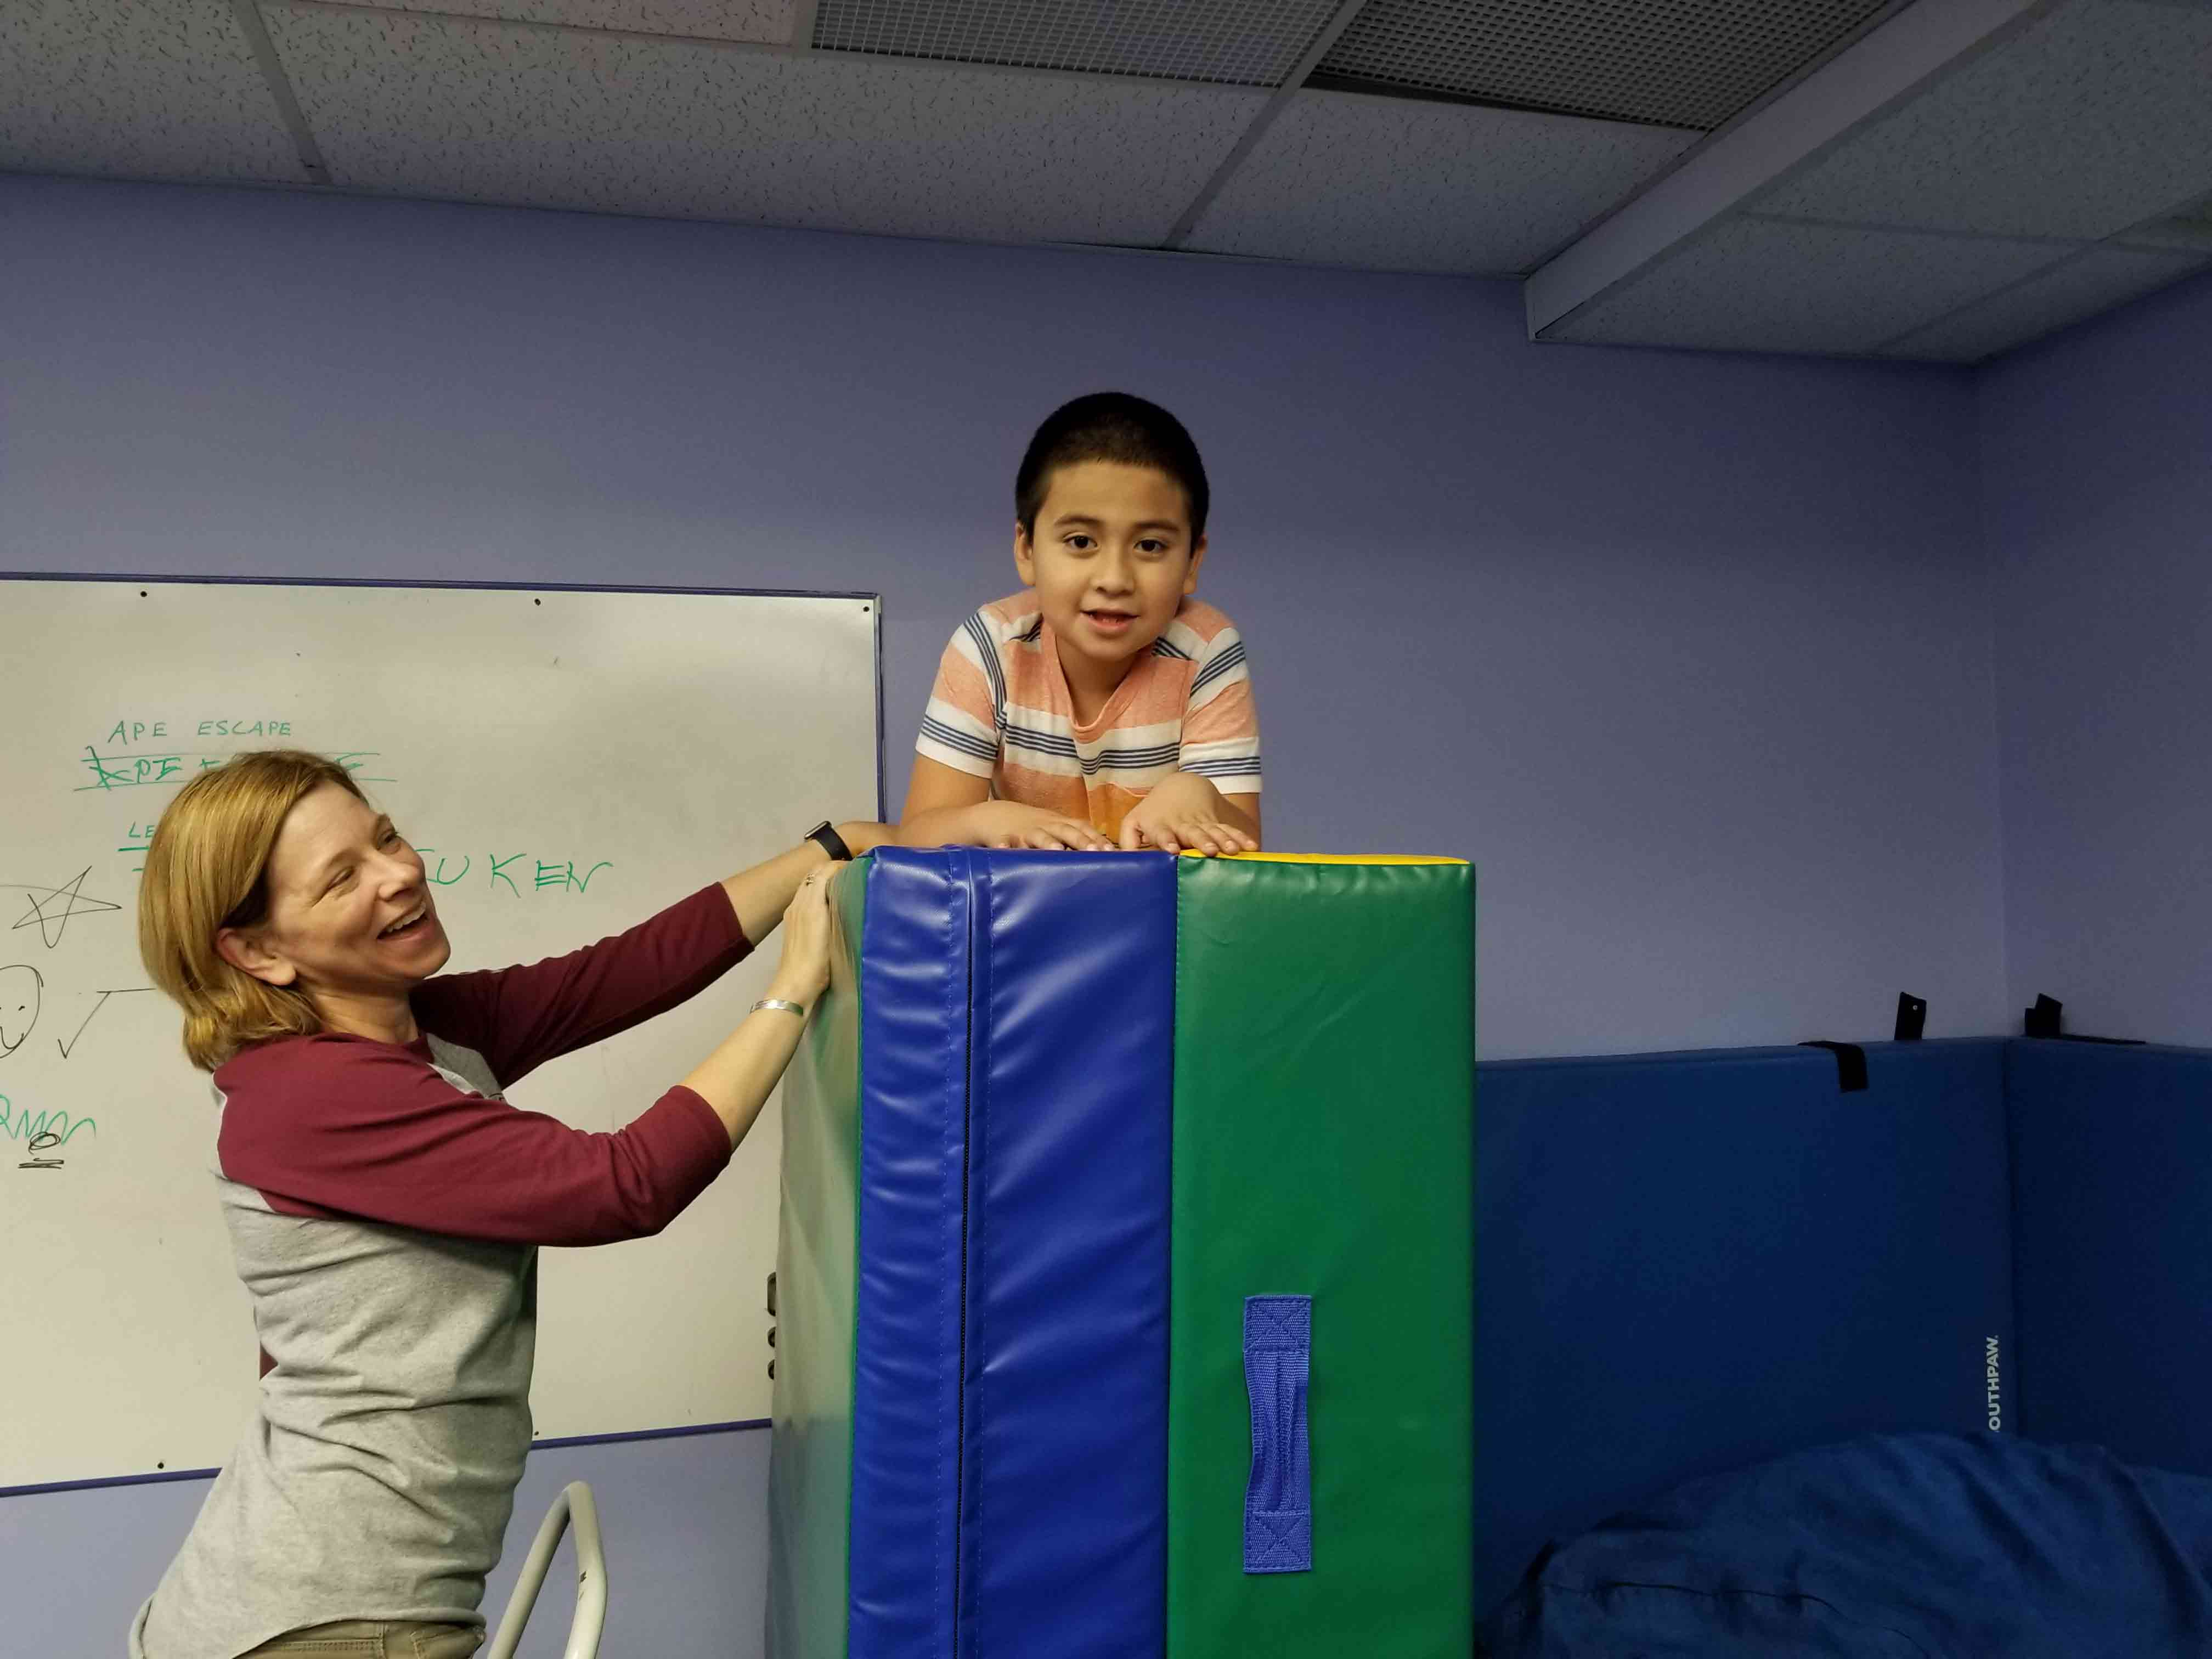 Child on top of gym mats with personal instructor